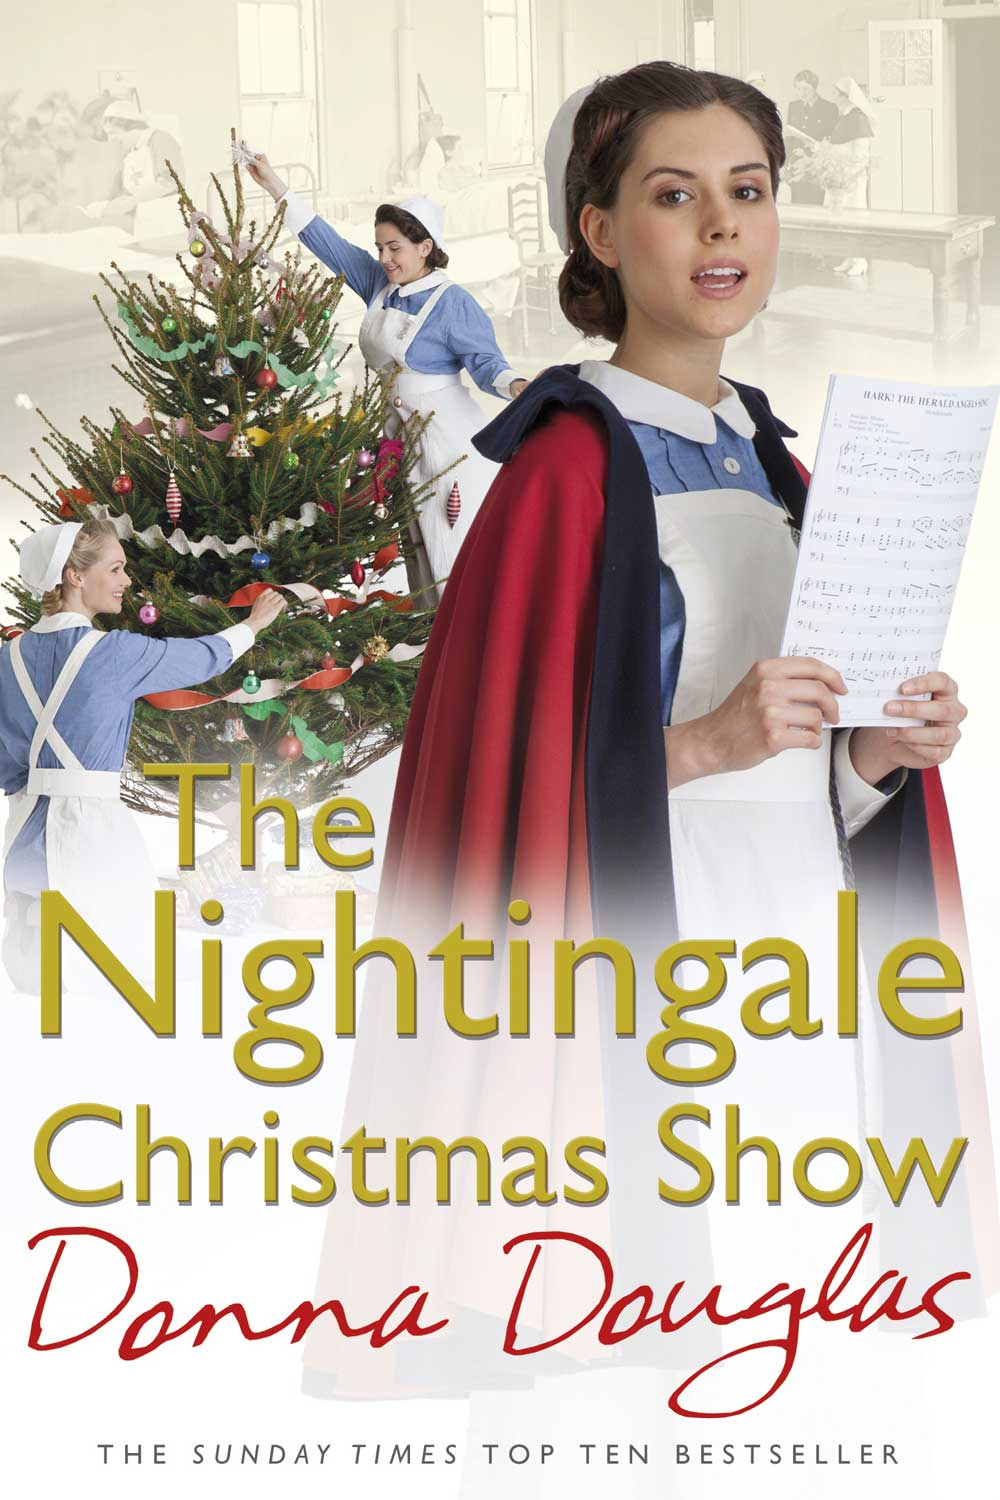 The-Nightingale-Christmas-Show-Donna-Douglas